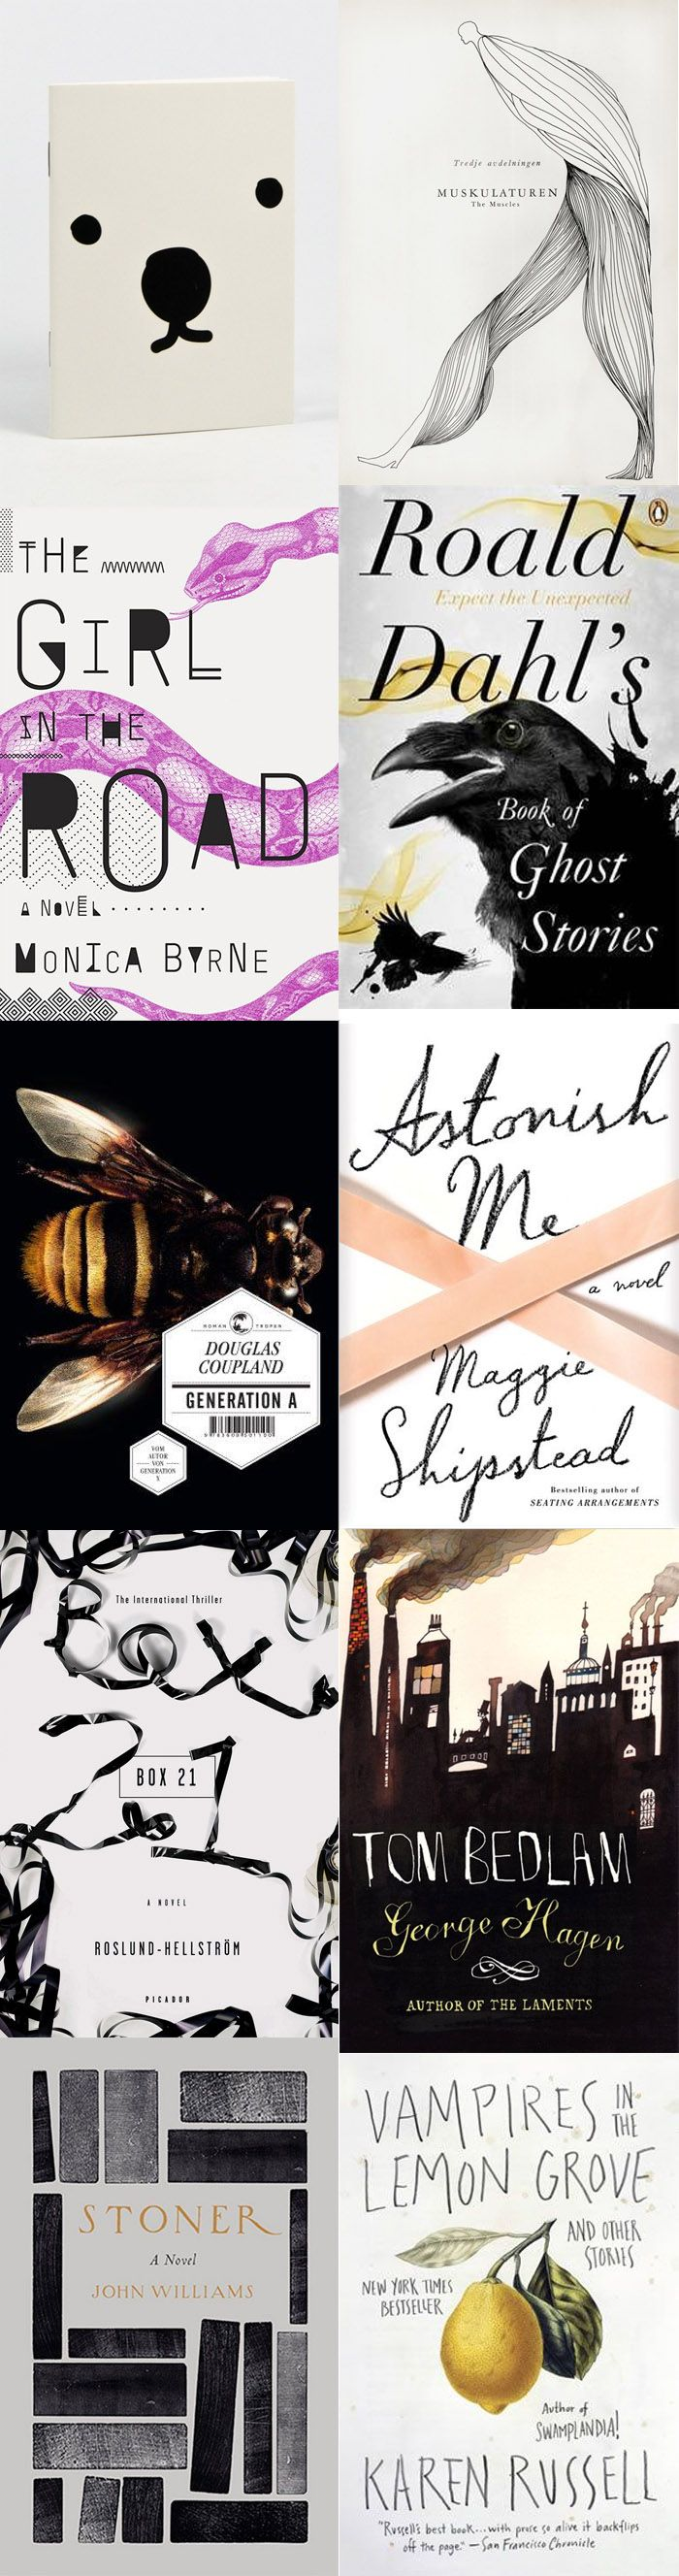 Book covers I love.